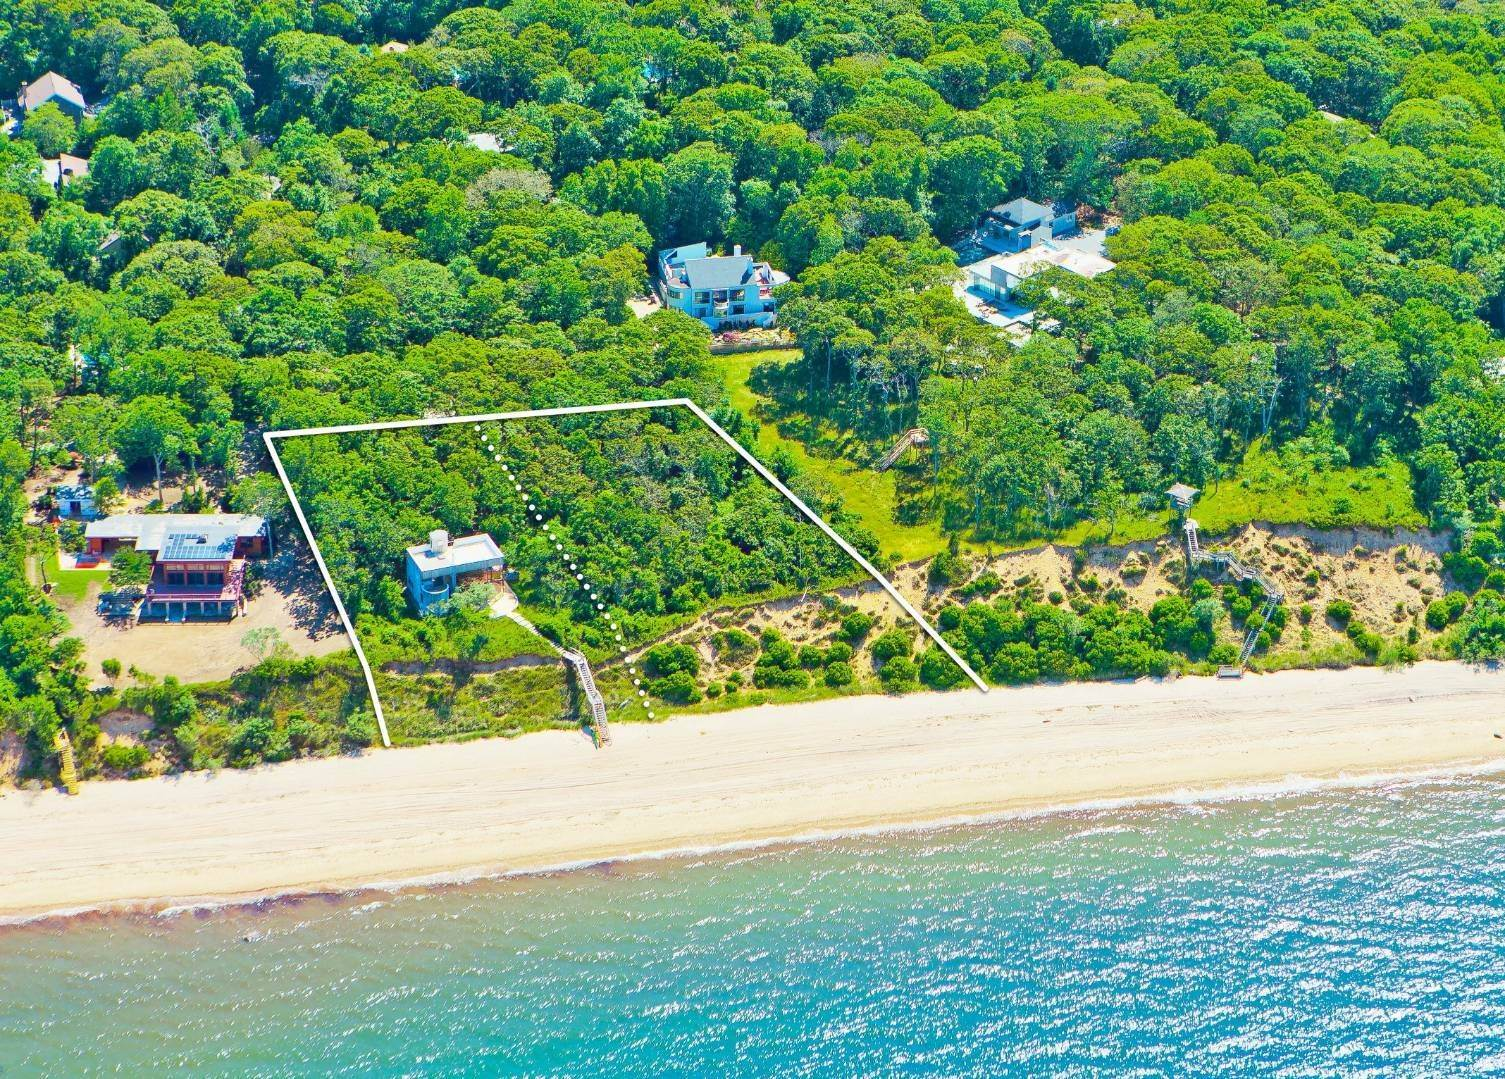 Single Family Home for Sale at Incomparable Waterfront Compound 39 & 41 Milina Drive, East Hampton, NY 11937